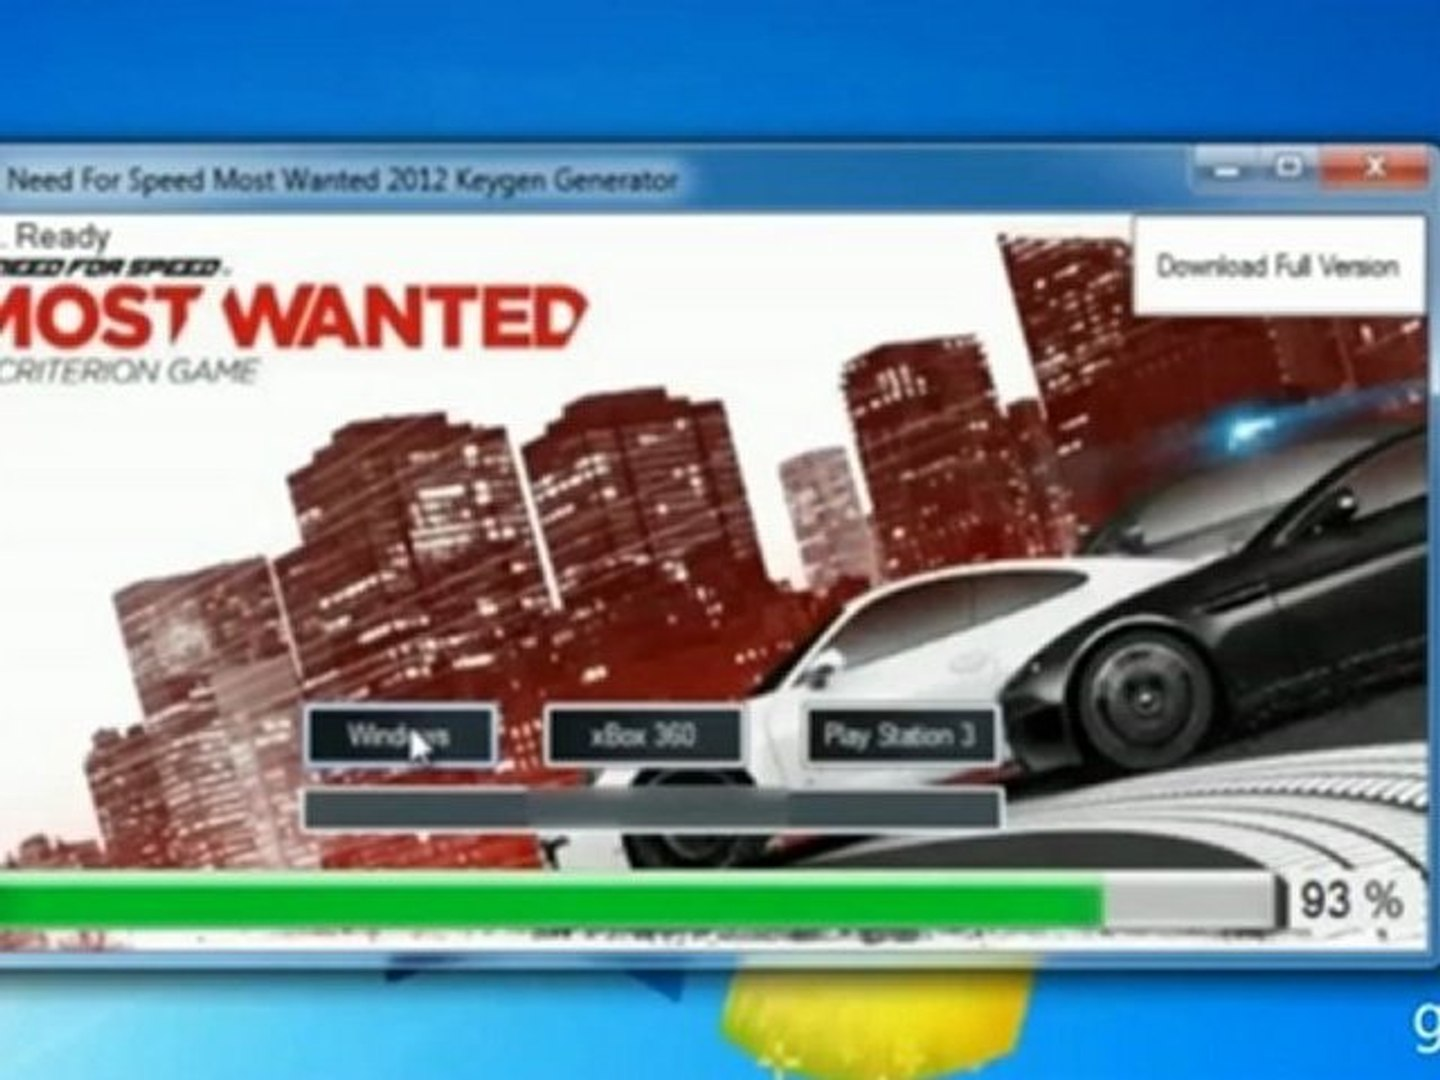 need for speed most wanted keygen download free